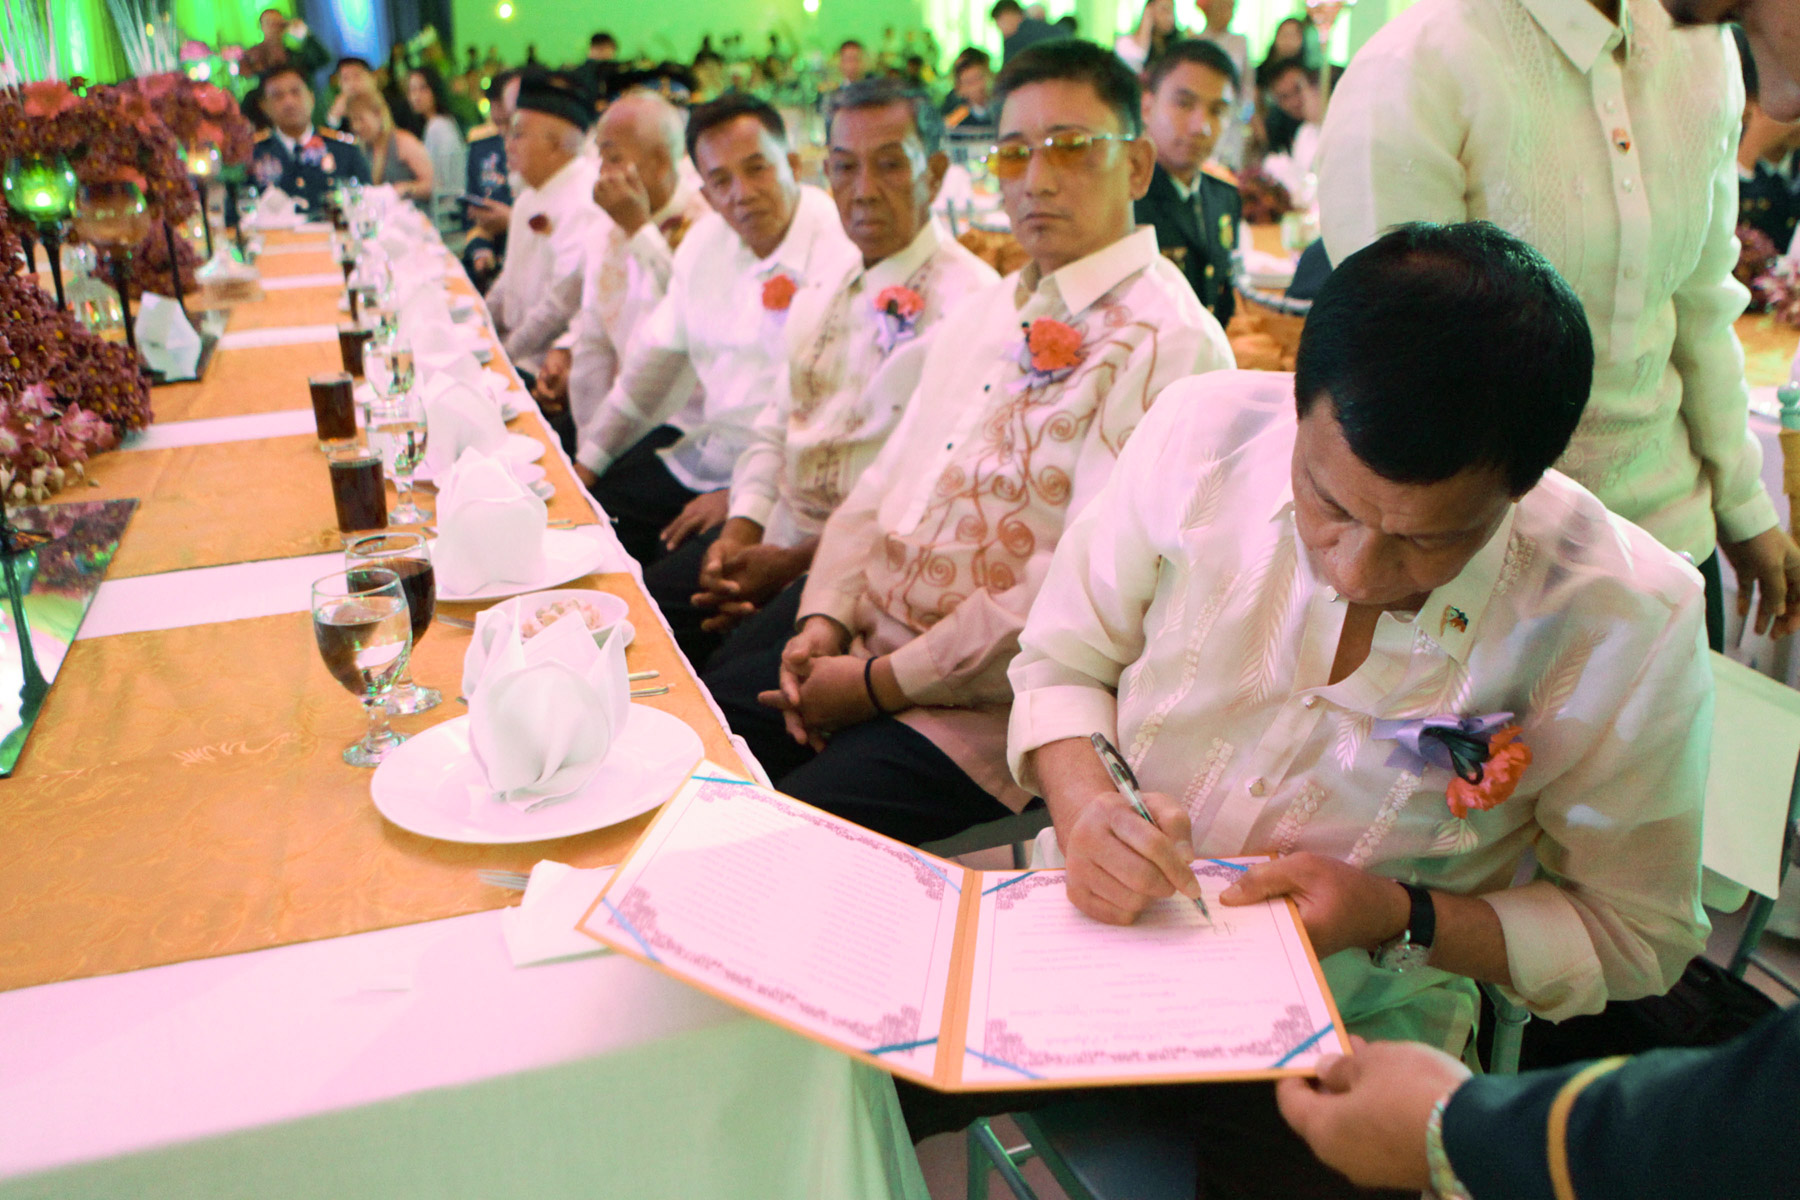 Duterte goes to wedding of cop who proposed in front of him